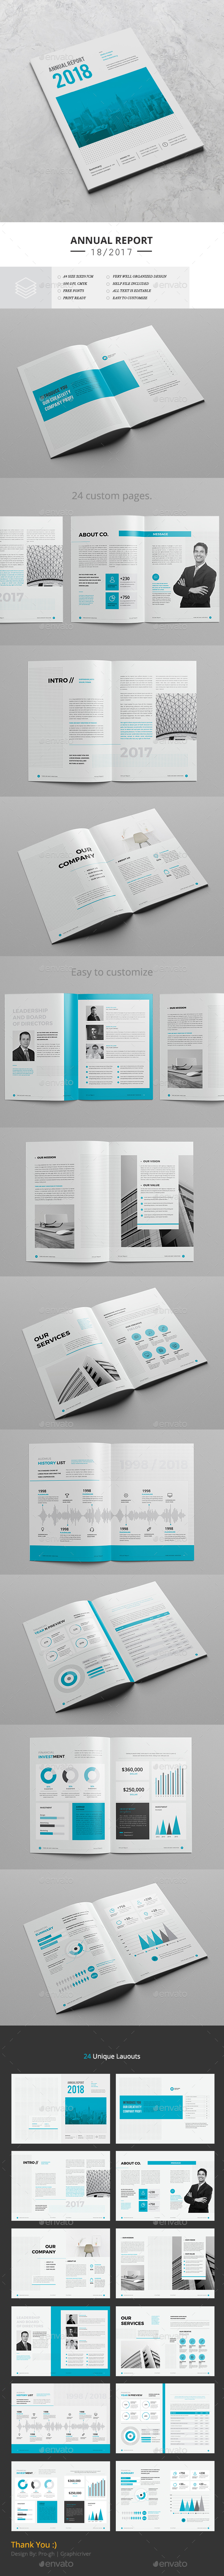 Annual Report 24 Pages - Corporate Brochures